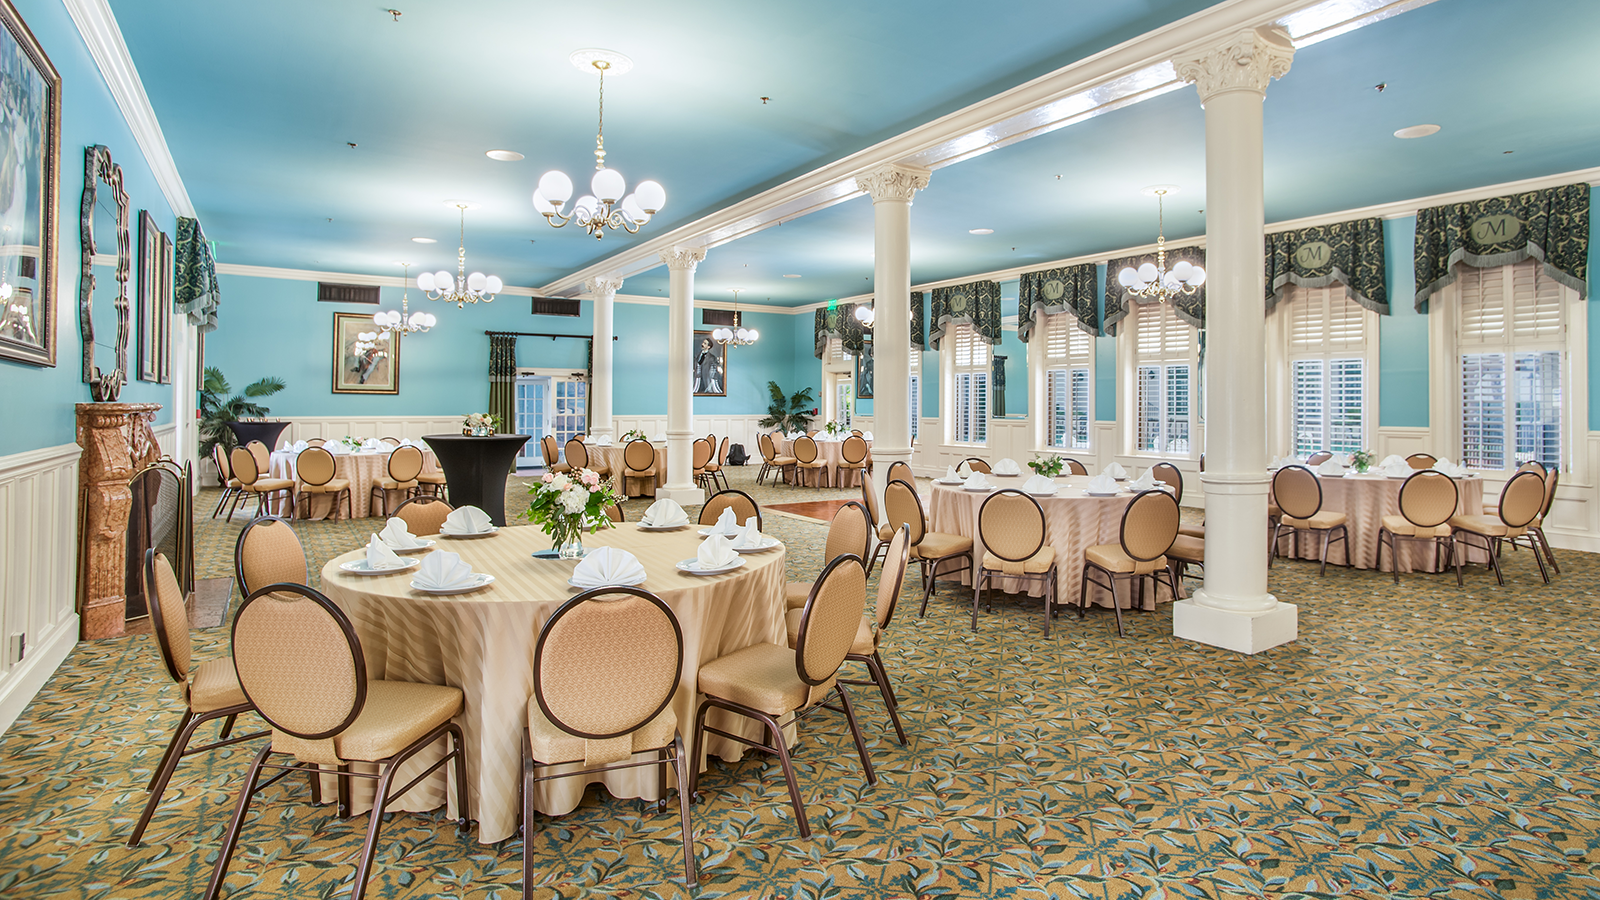 Image of Menger Grand Ballroom at The Menger Hotel, 1859, Member of Historic Hotels of America, in San Antonio, Texas, Special Occasions